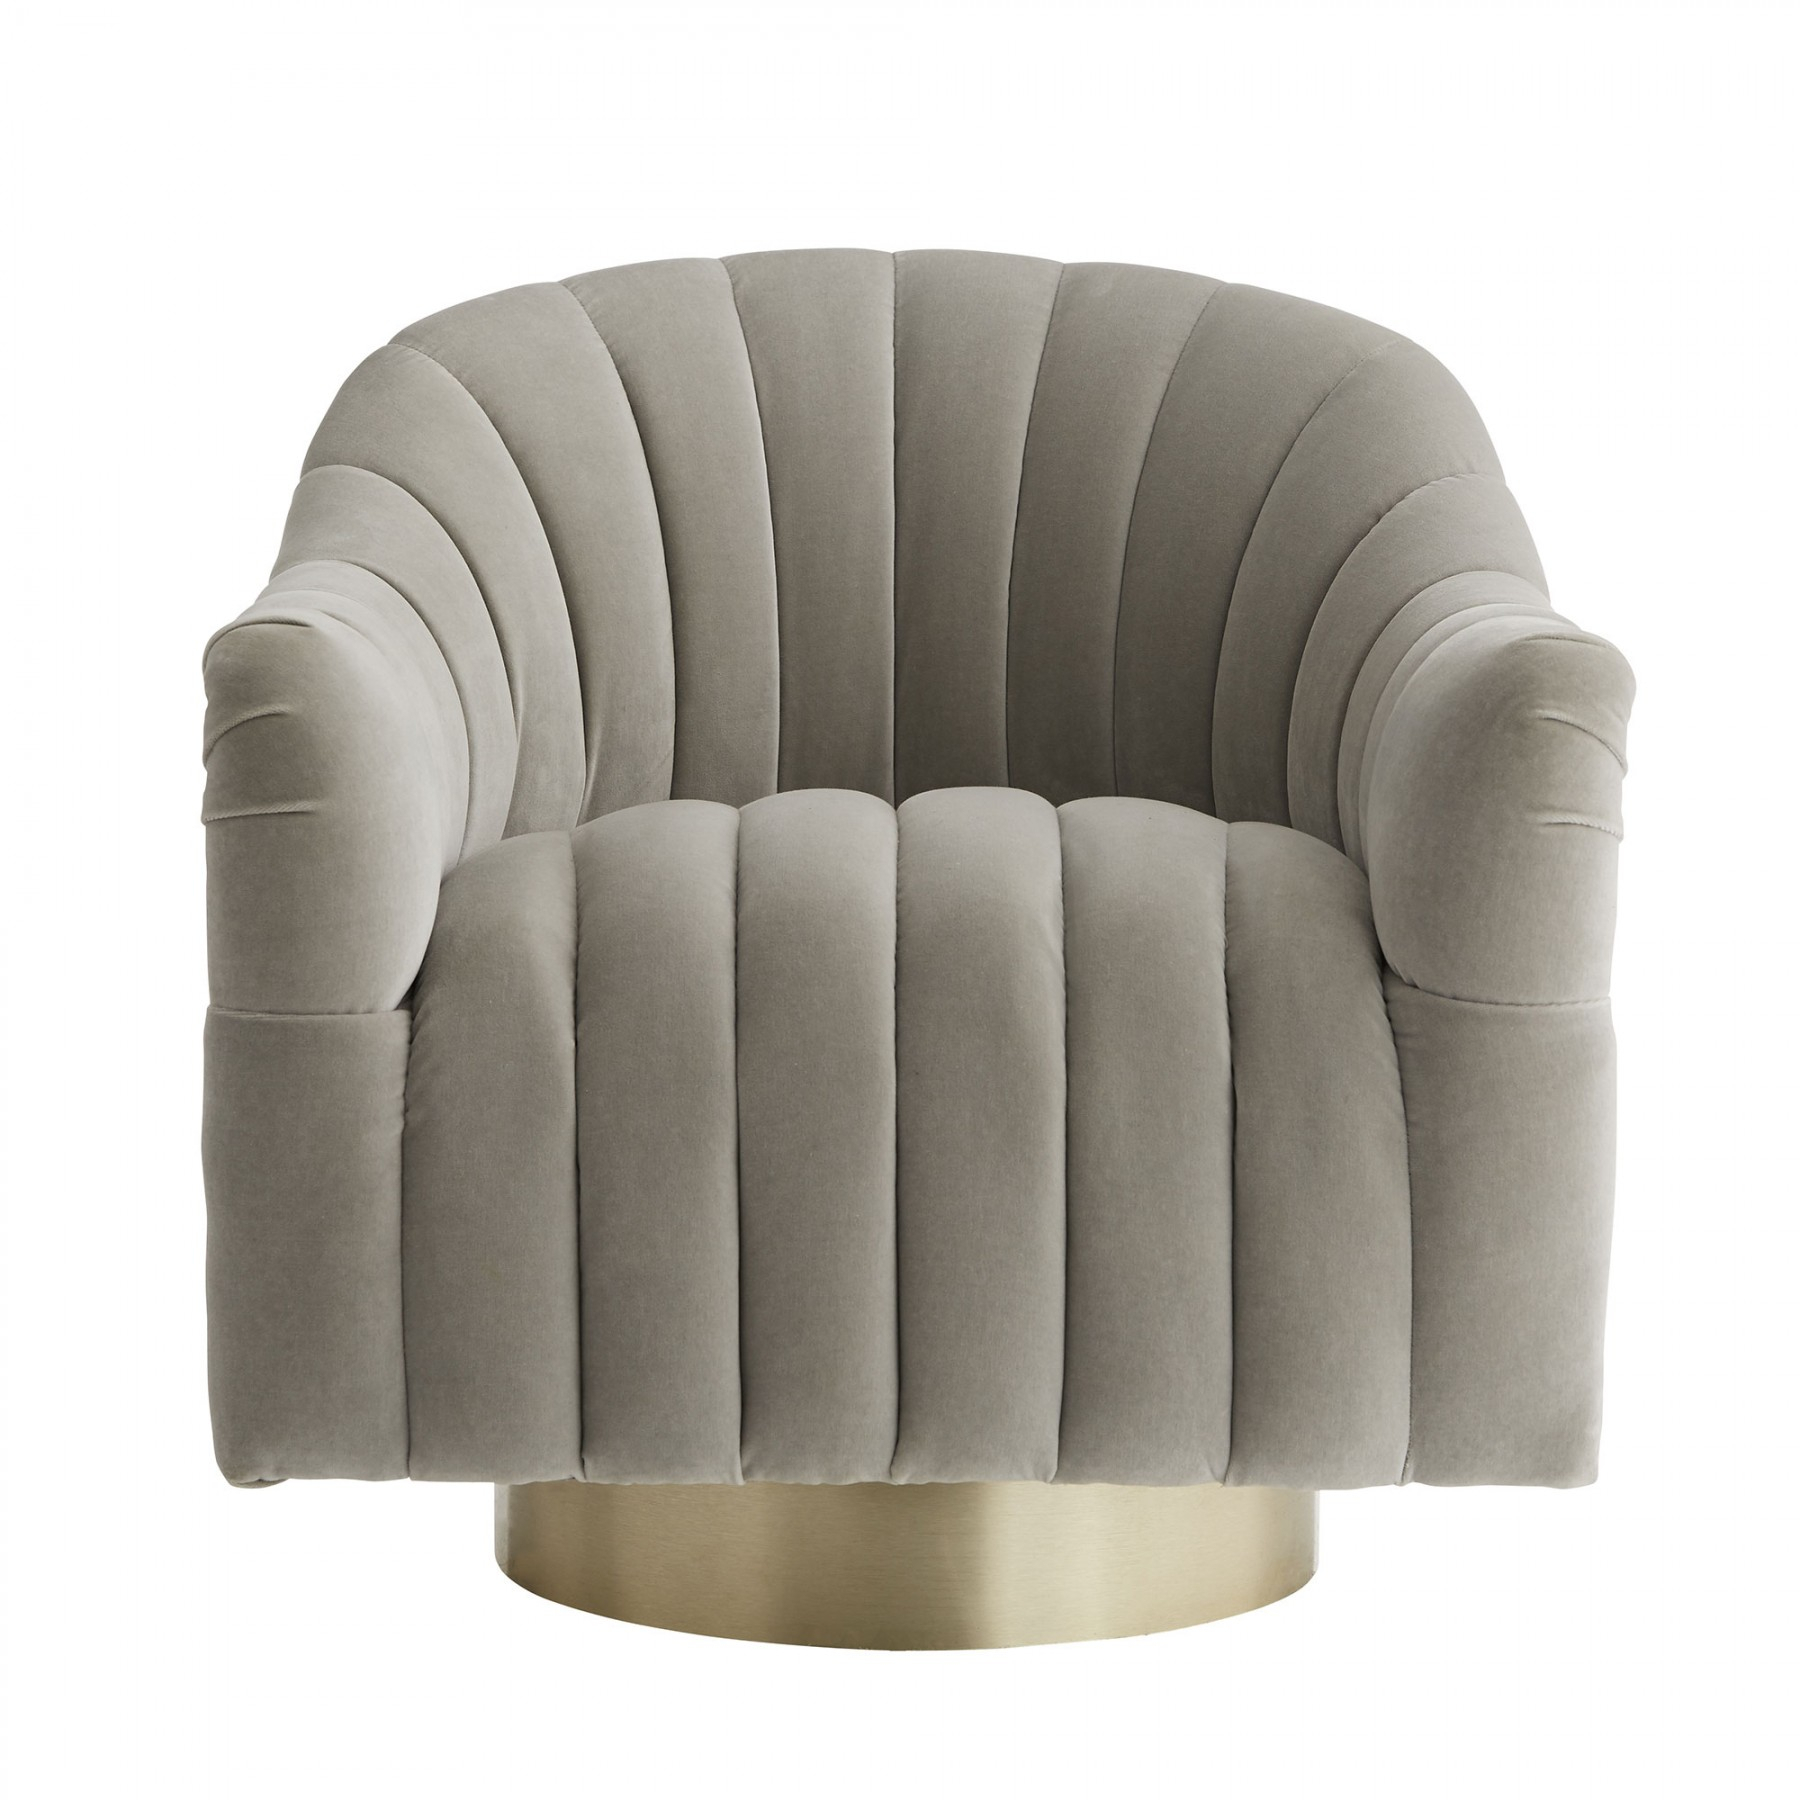 Springsteen Chair Flint Velvet Champagne Swivel With Regard To Harbor Grey Swivel Accent Chairs (View 3 of 25)